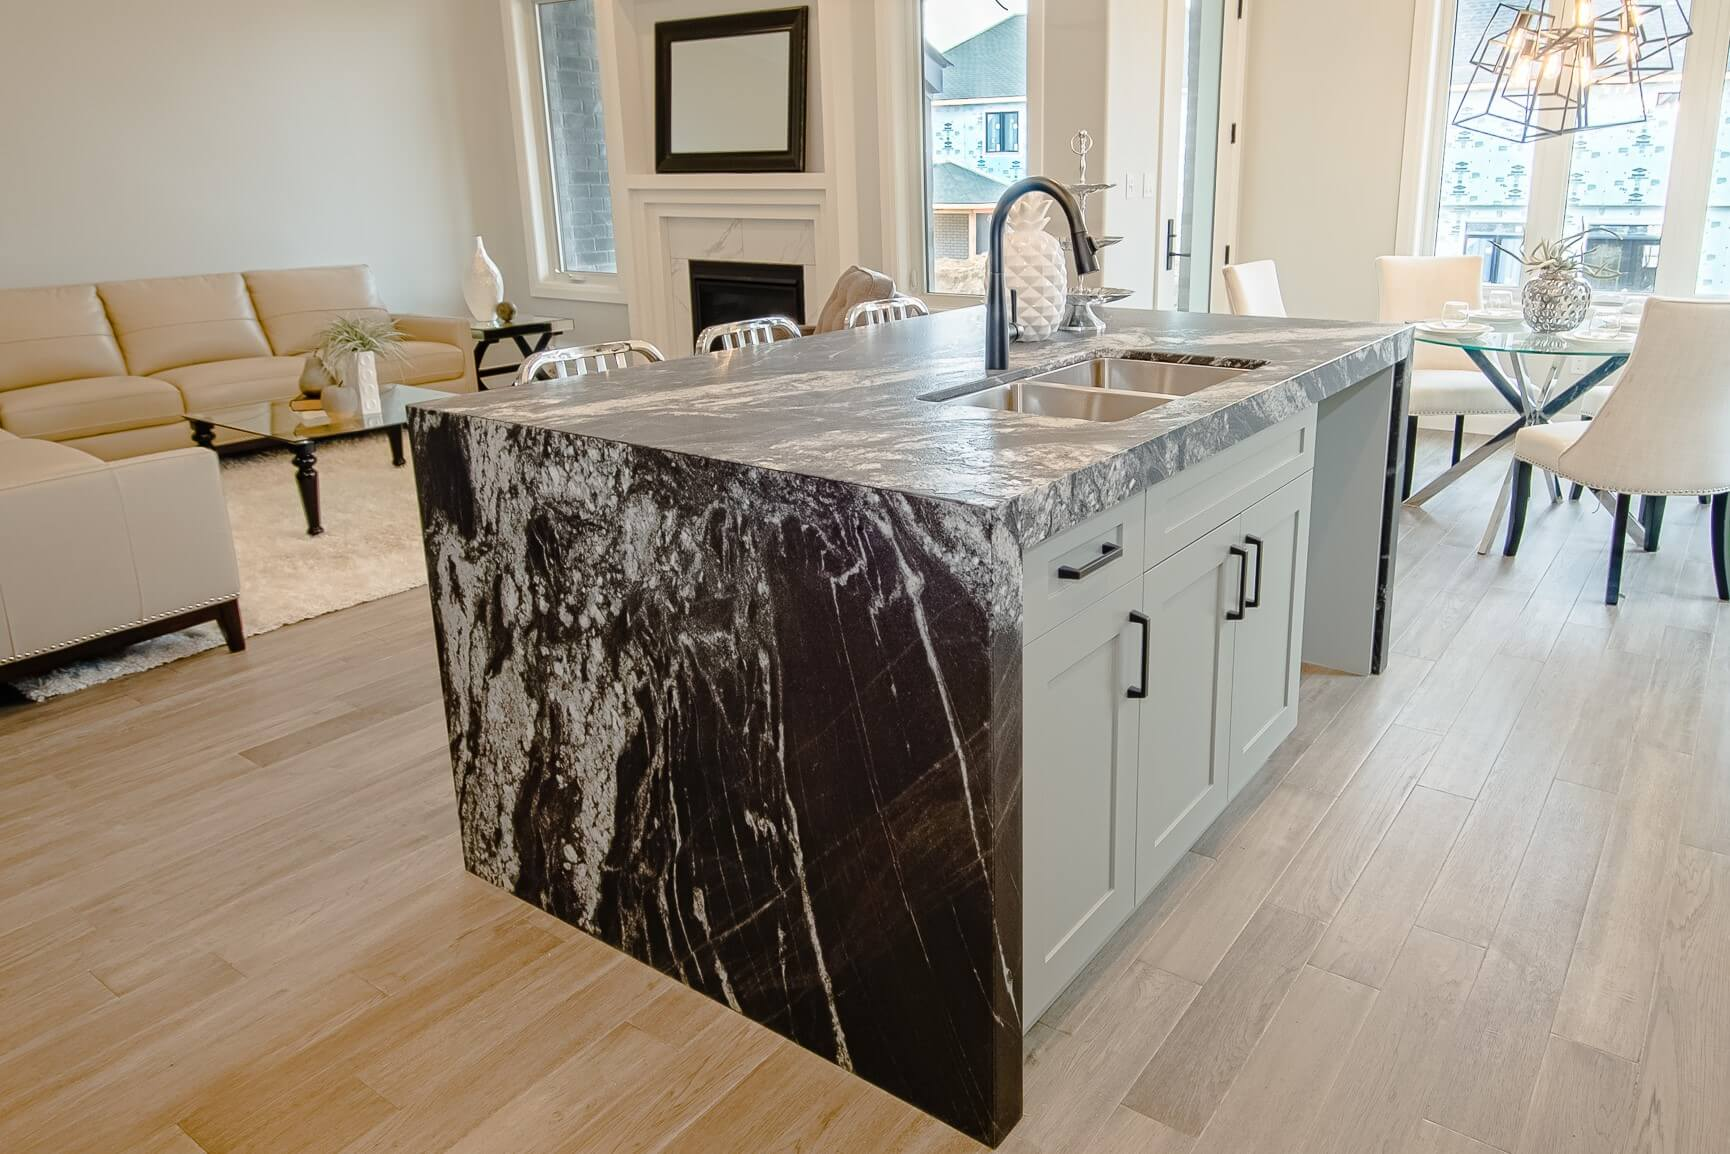 Silver Wave Leathered Granite Sloan